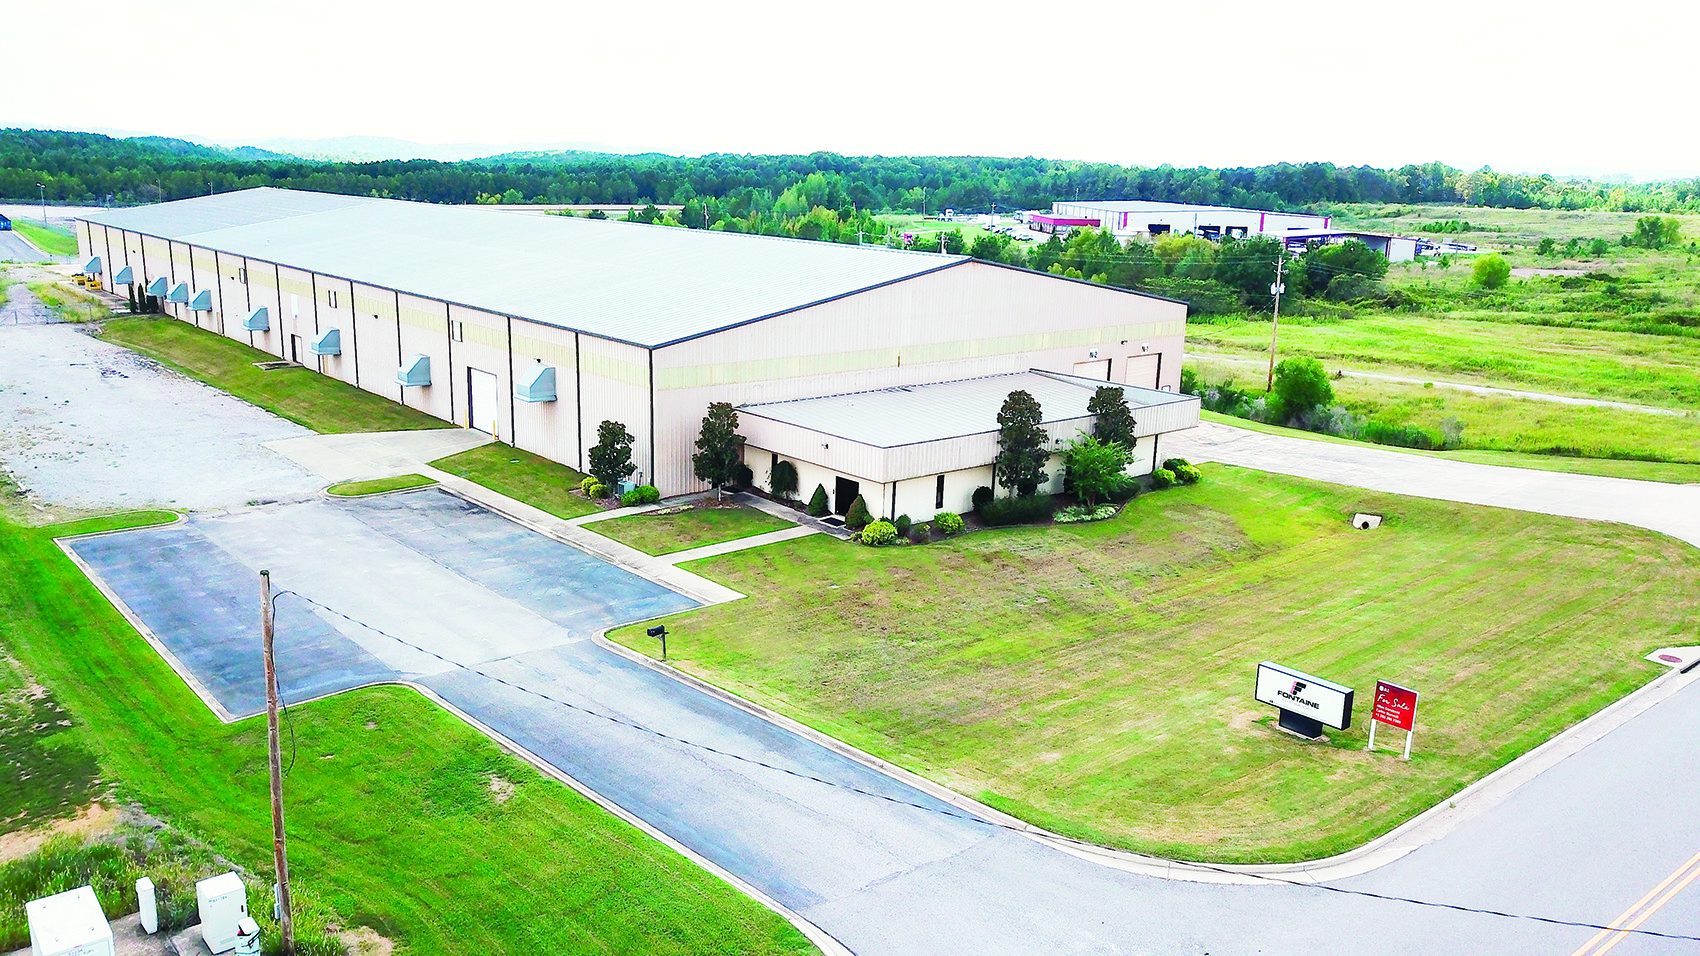 Wisconsin-based Rice Lake is expanding its presence in Walker County with the purchase of an additional manufacturing building located in Bevill Industrial Park in Jasper. The building formerly housed Fontaine Renew.